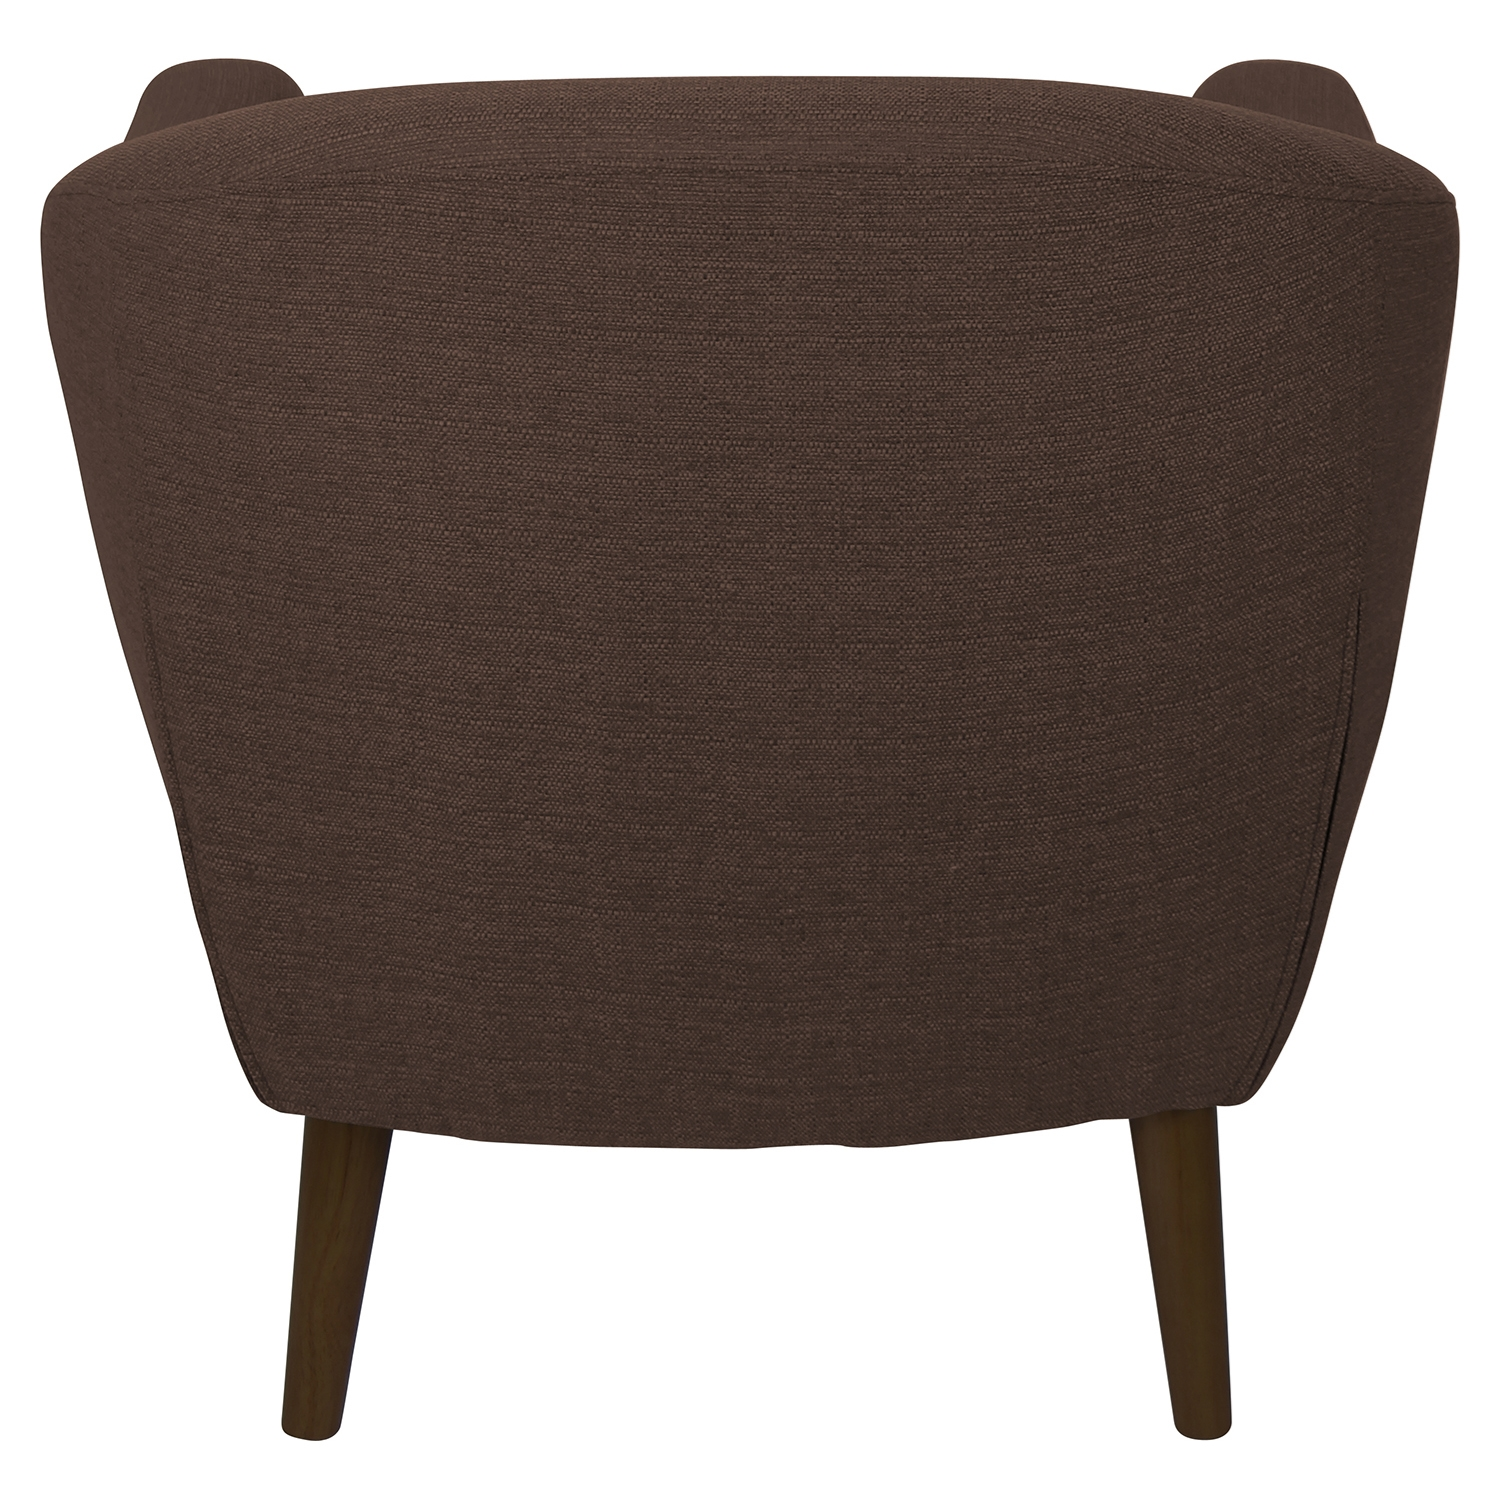 Rockwell Upholstery Armchair - Button Tufted, Espresso - LMS-CHR-AH-RKWL-ESP